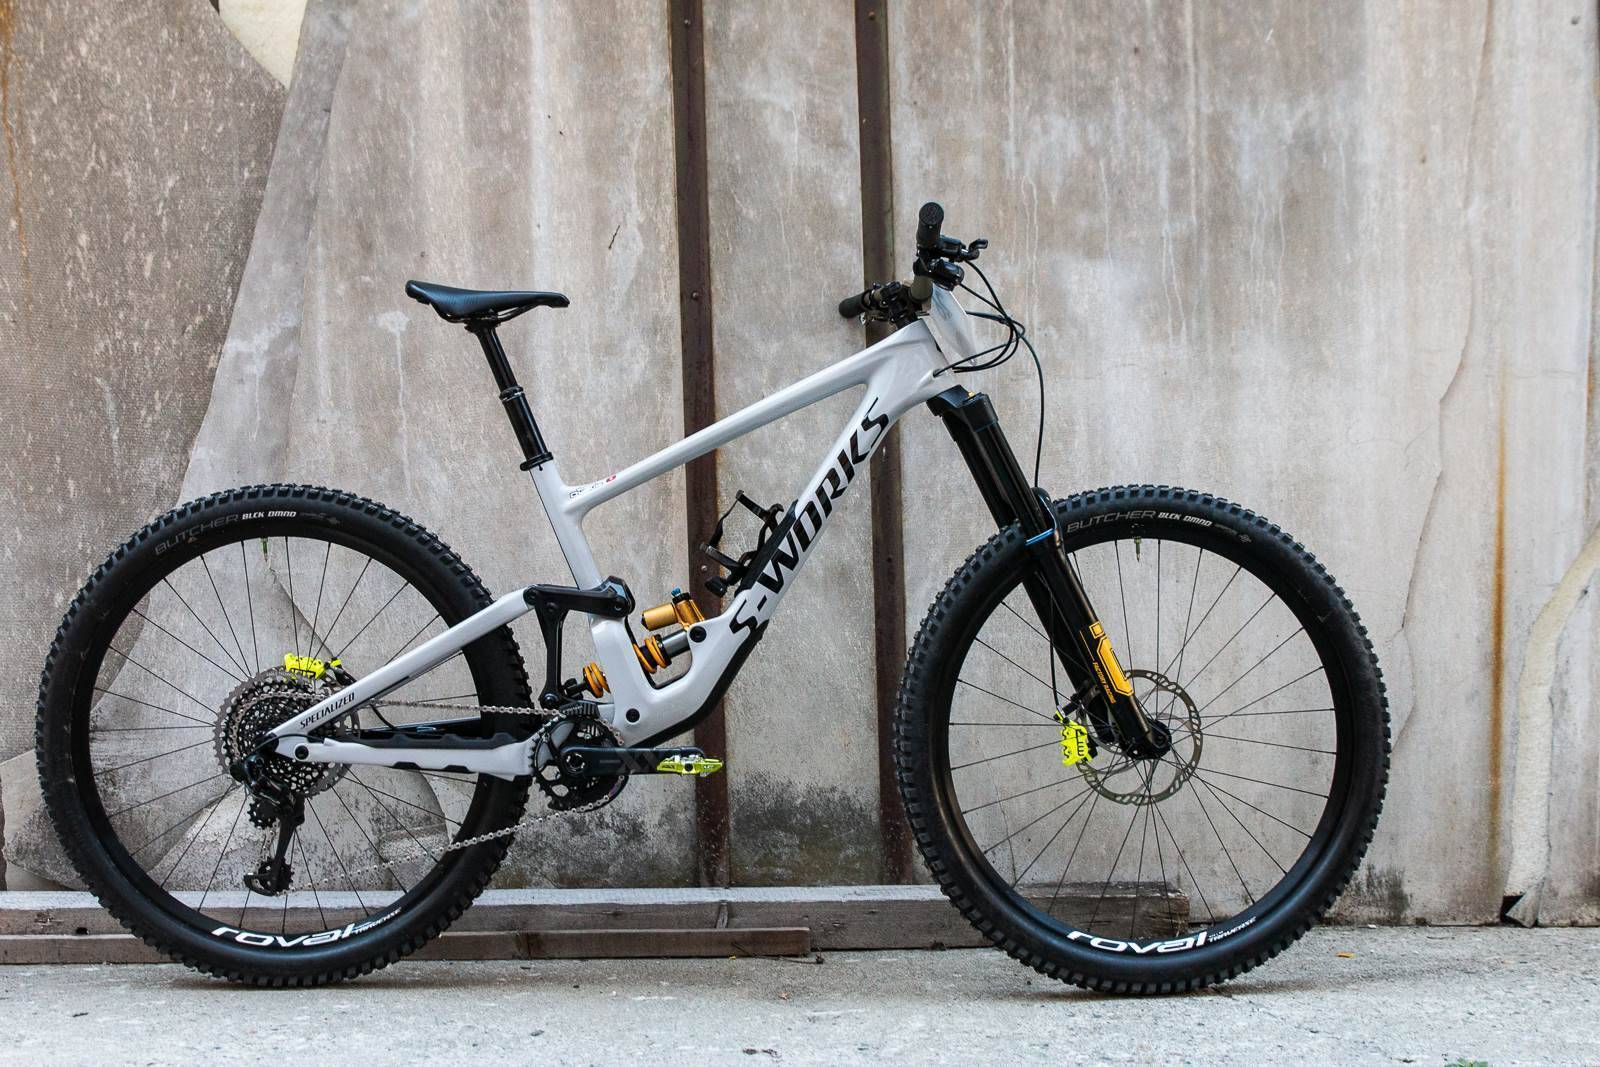 EWS Bike Check: Max Chapuis' Specialized Enduro